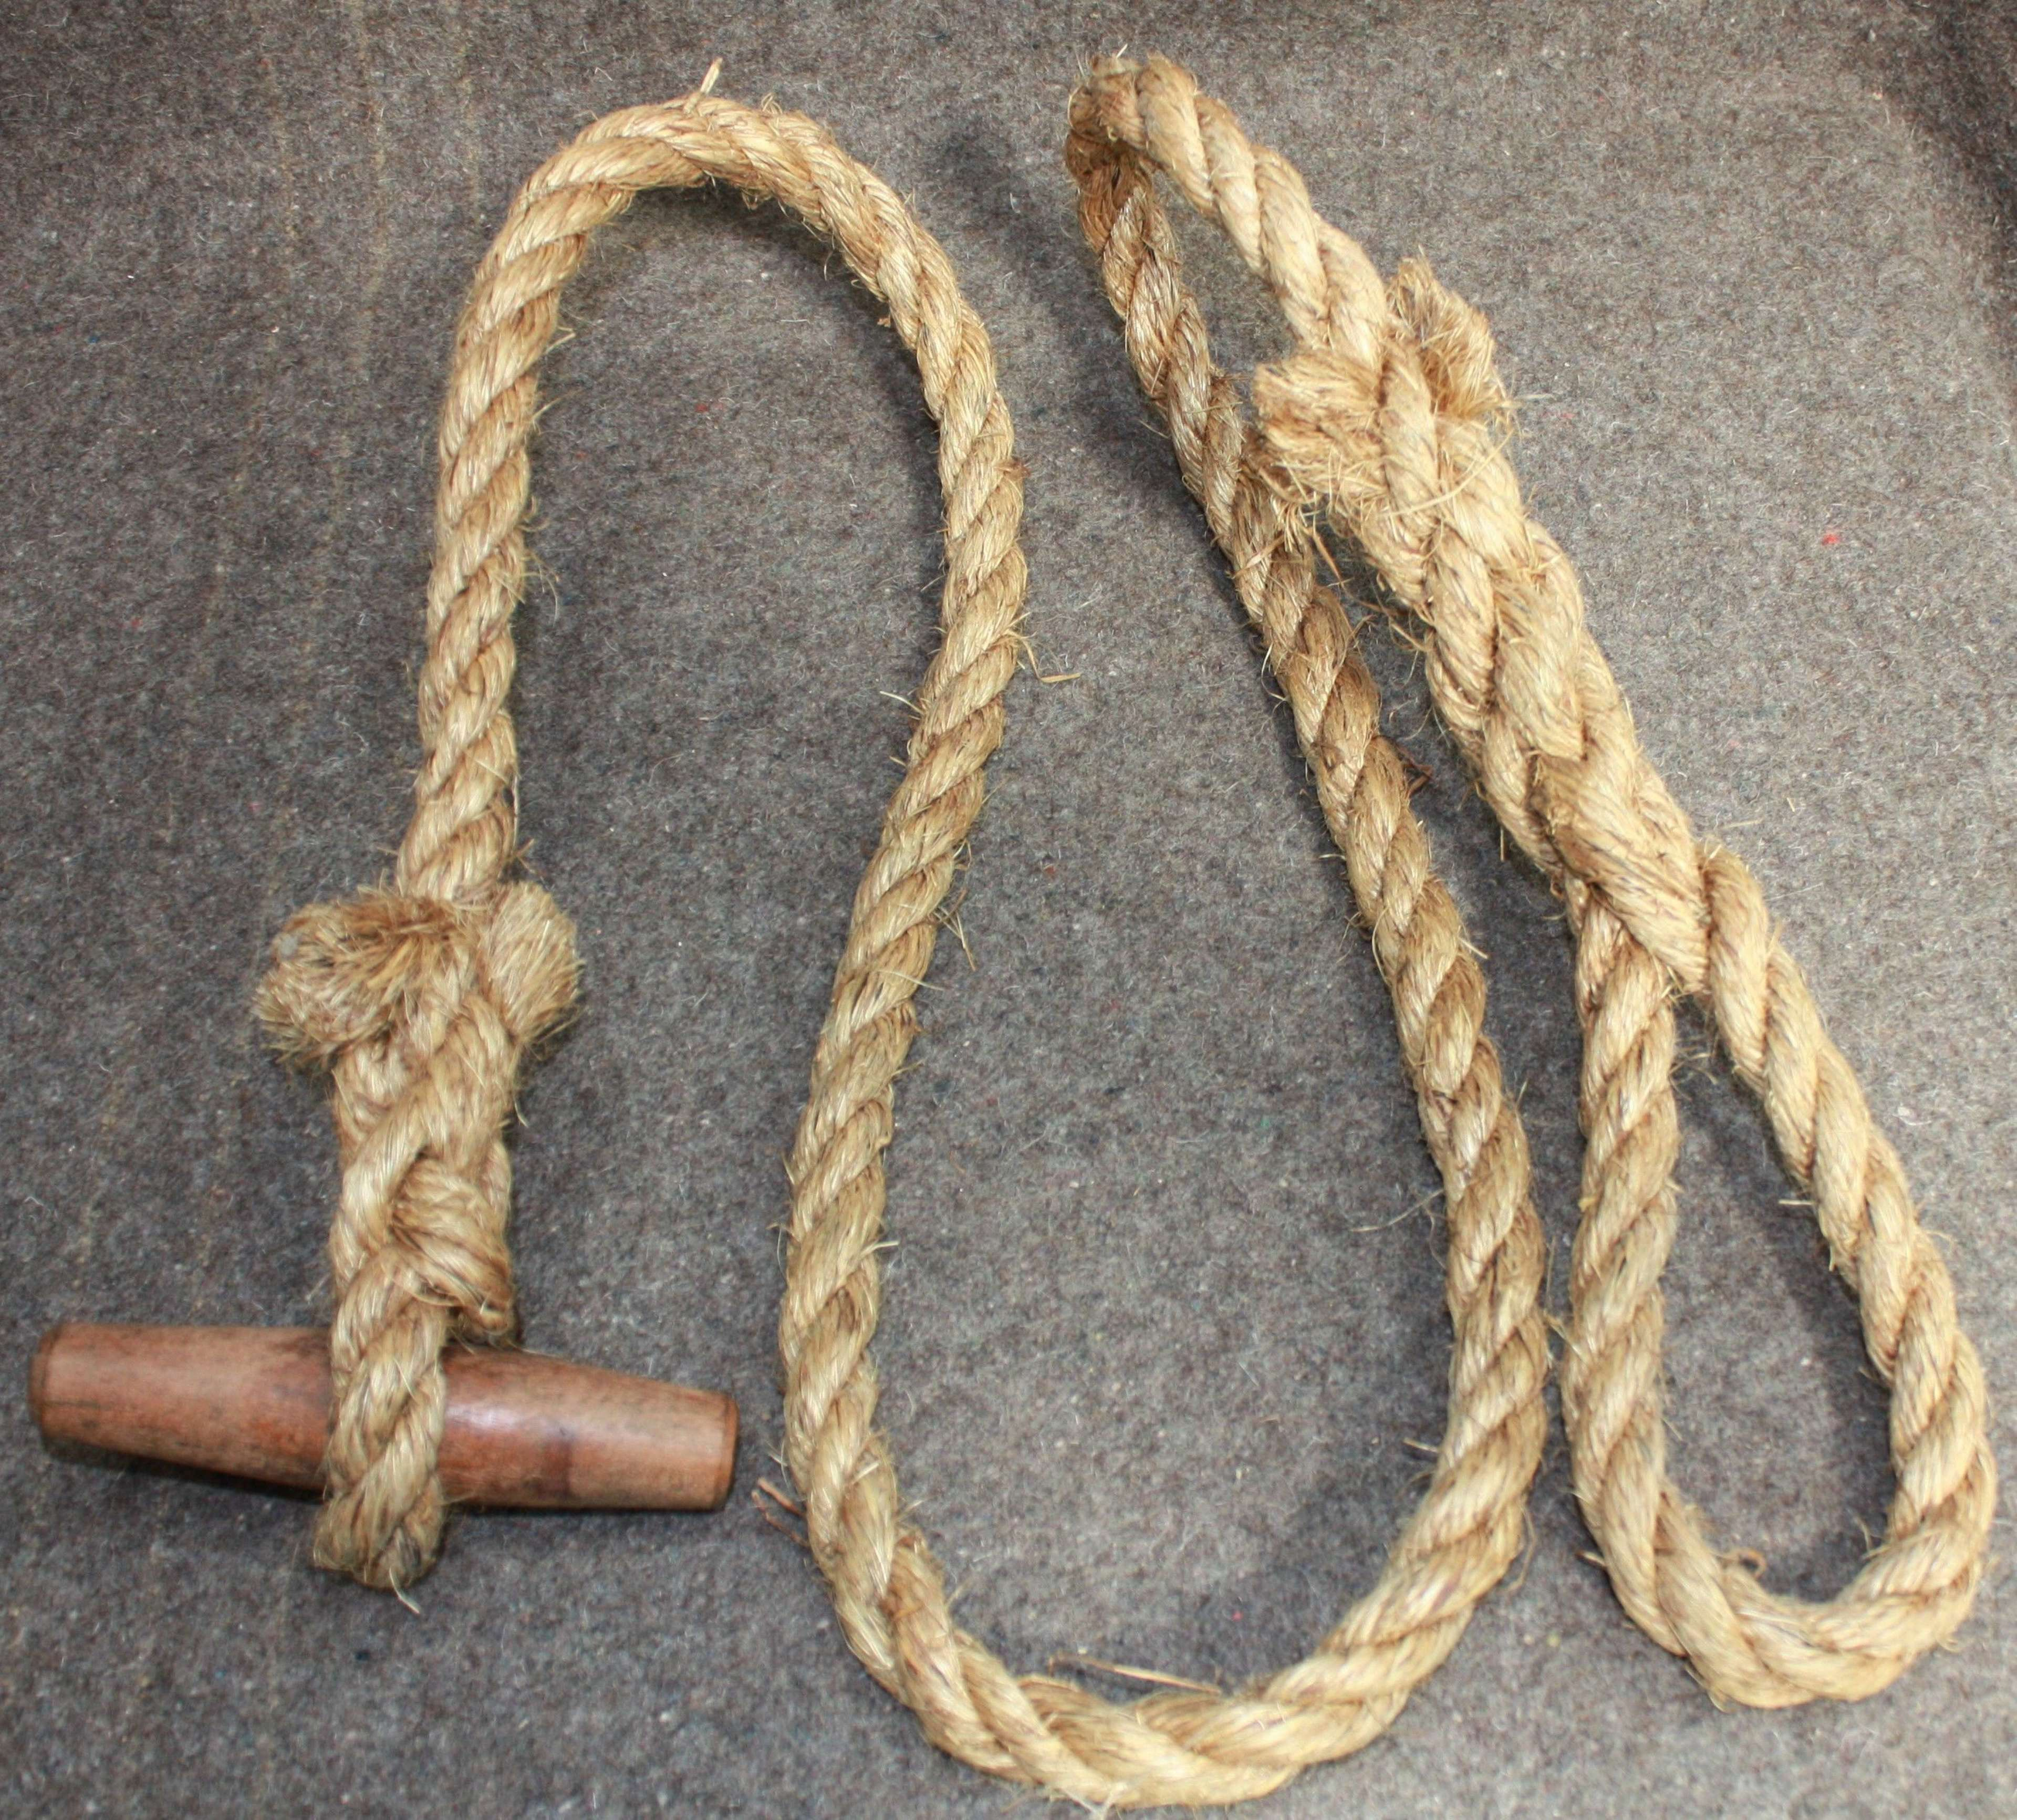 A GOOD 1944 DATED AIRBORNE FORCE THICK TOGGLE ROPE